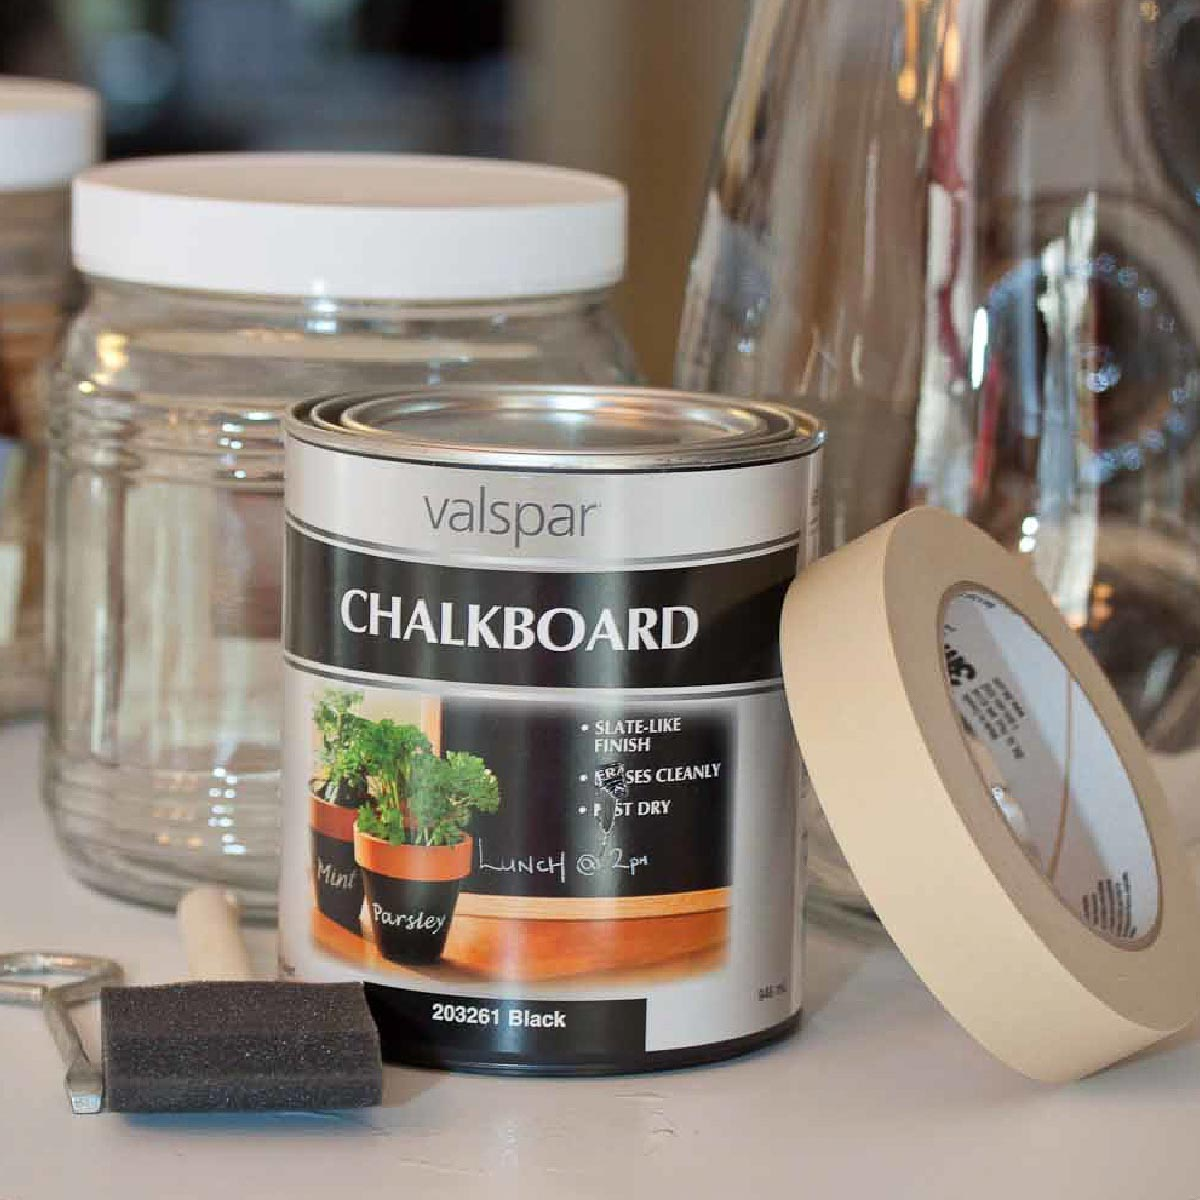 Chalkboard paint & supplies with glass jars